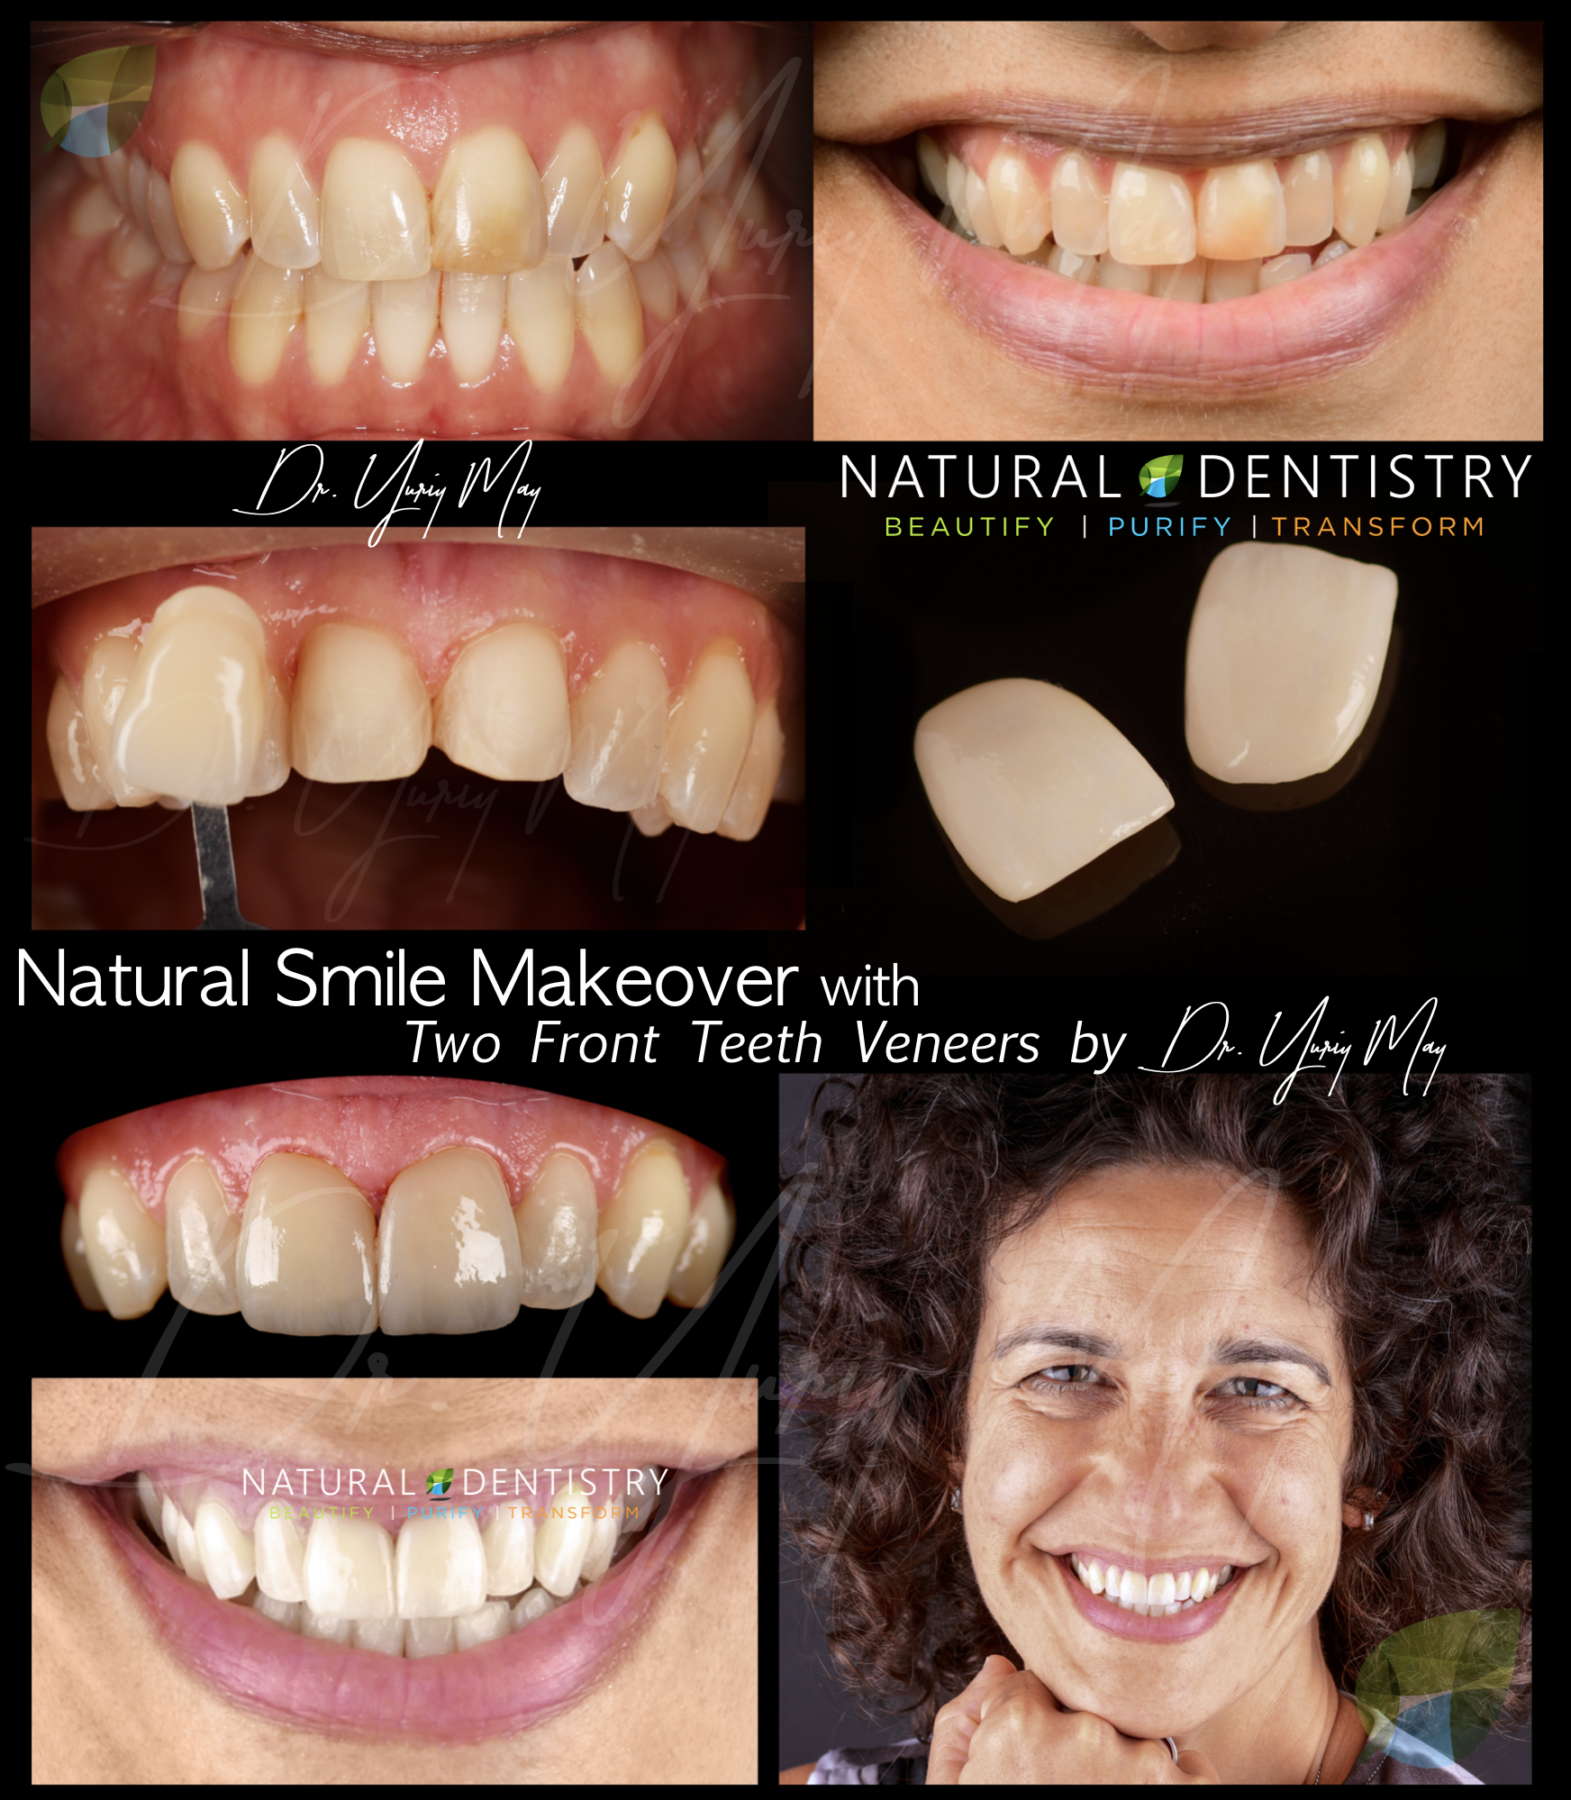 Best Cosmetic Dentist CT Dr. Yuriy May Connecticut Porcelain Veneers Cosmetic Dentistry Before After